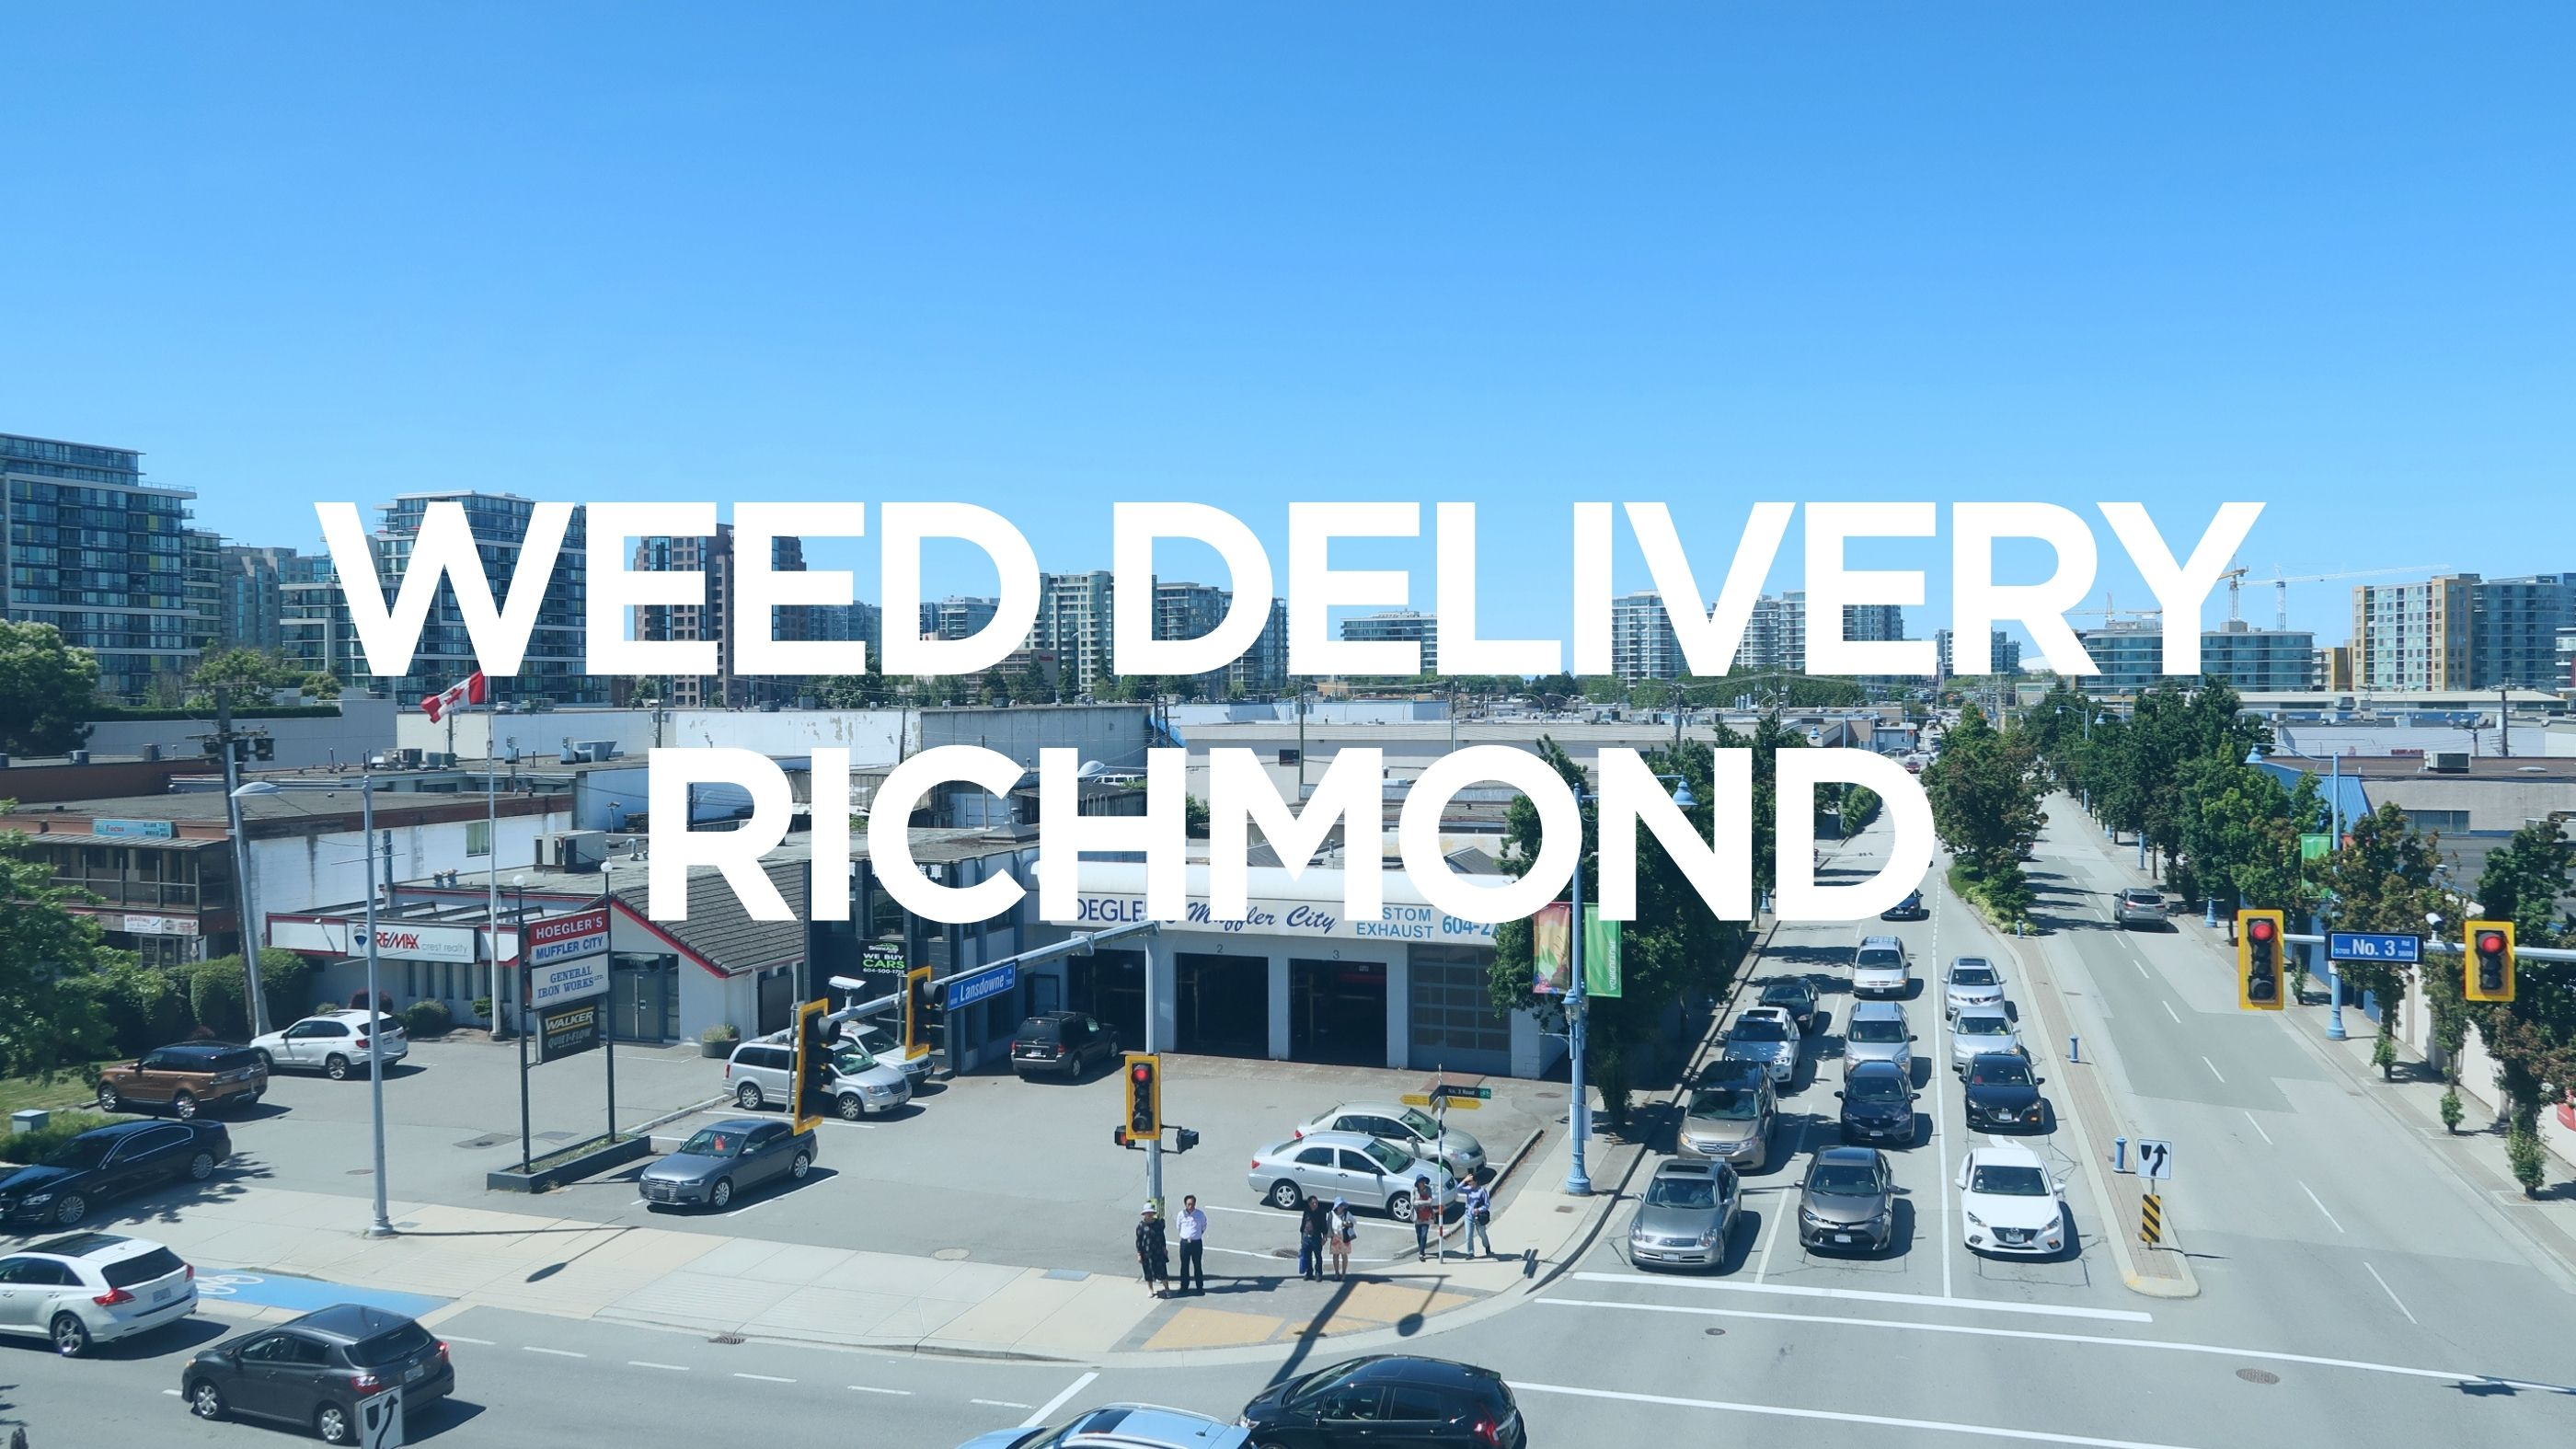 Weed Delivery Richmond